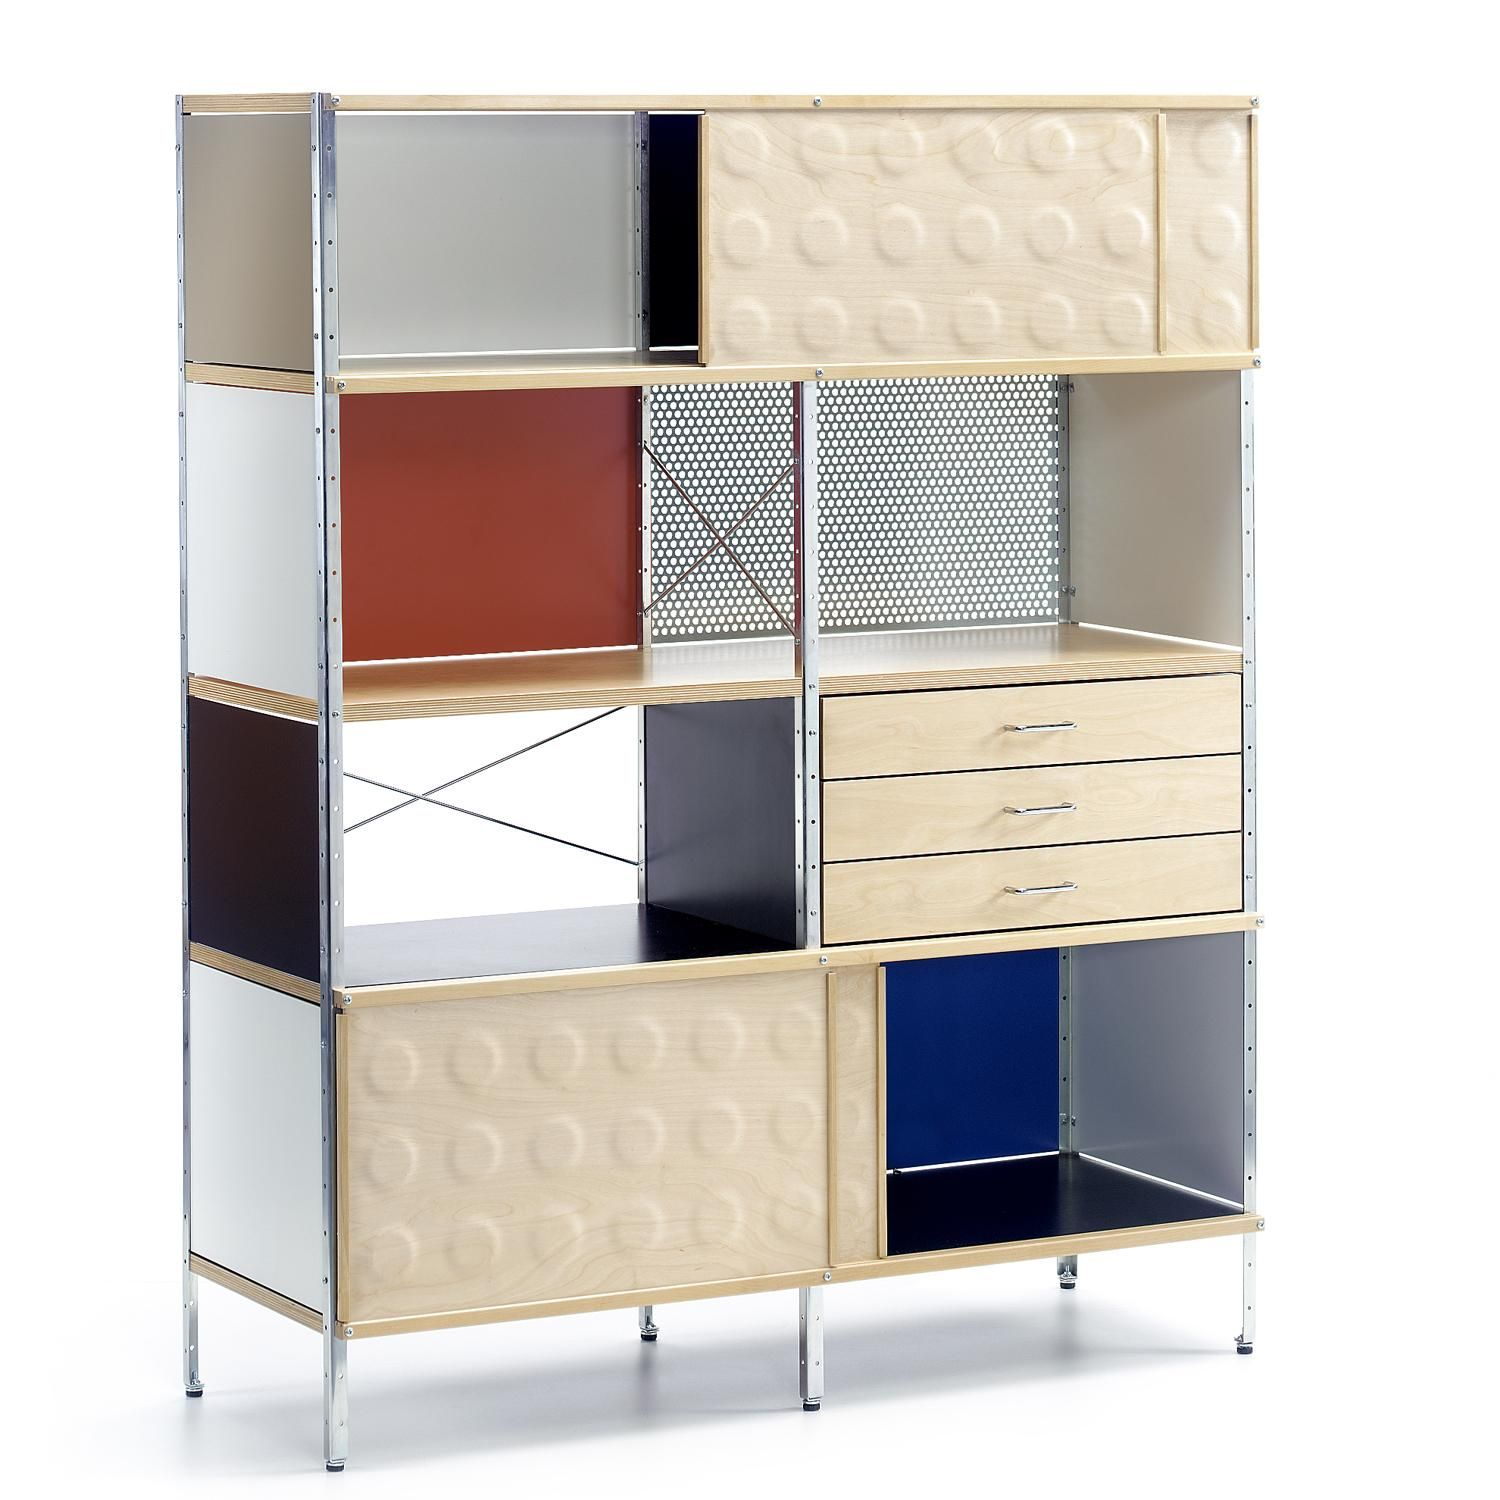 The Stylist magazine listed Eames Bookcase as one of this week's ...